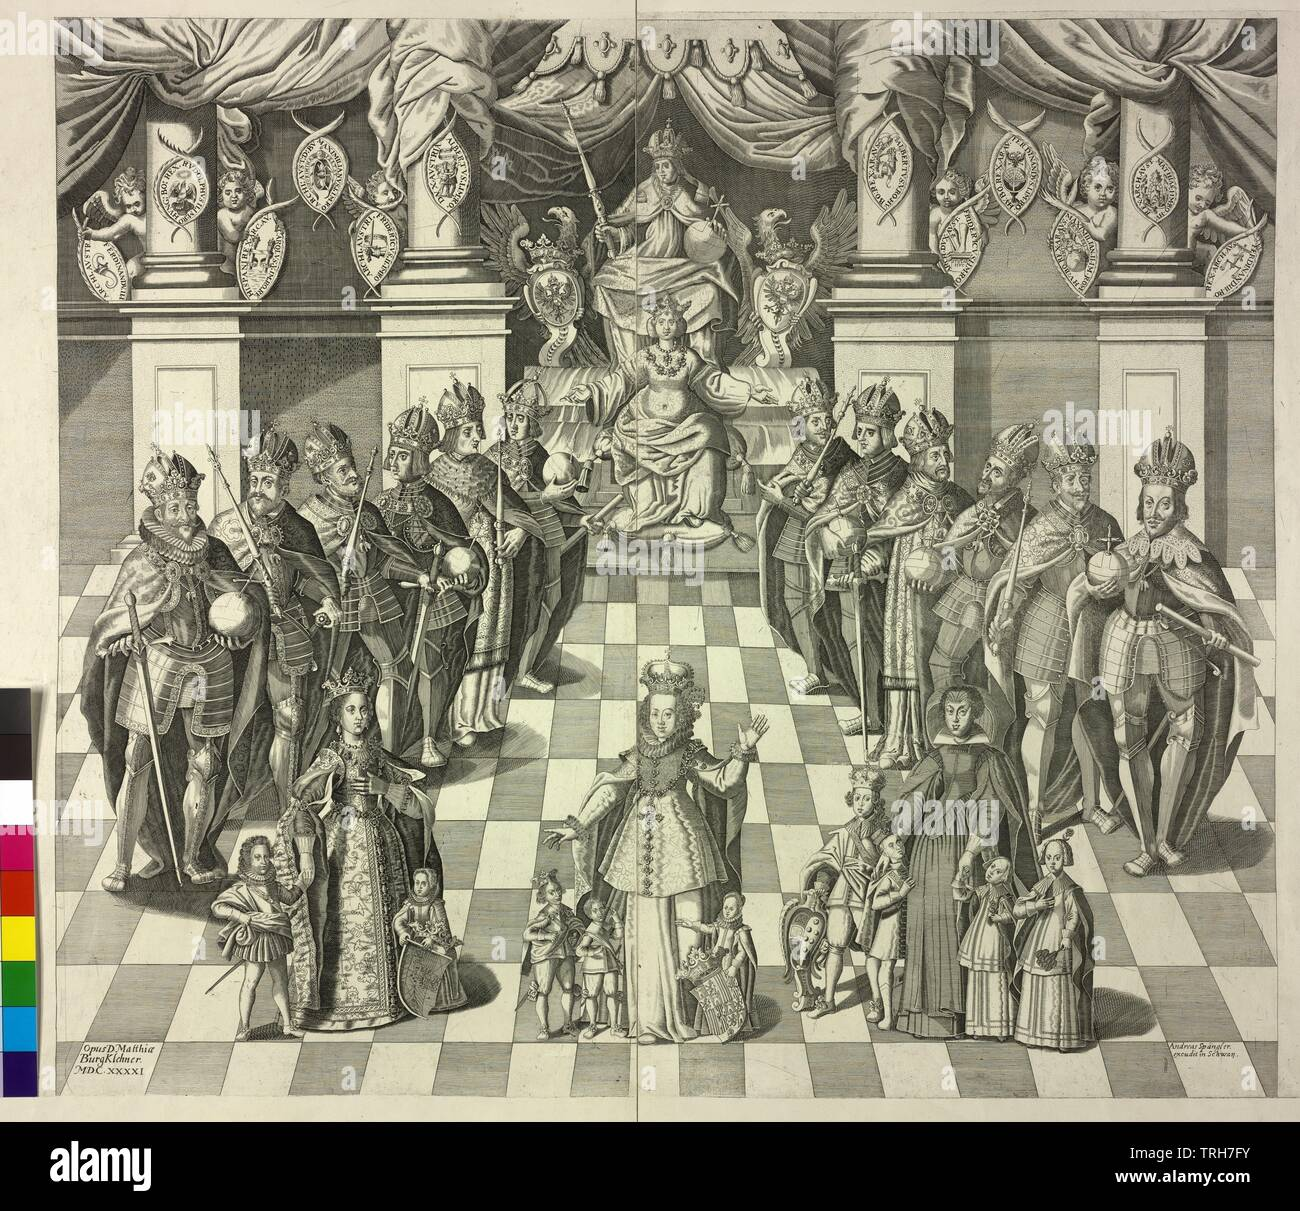 House of Habsburg, The German king and Roman Emperor from the House of Habsburg, Rudolf I - Ferdinand III, Gertrude of Hohenberg (peak) (?), in the foreground the wife King Philipp IV of Spain and Emperor Ferdinand II, as well as the widow Archduke Leopolds V. von Tyrol with their circa 1641 alive progeny, Additional-Rights-Clearance-Info-Not-Available - Stock Image